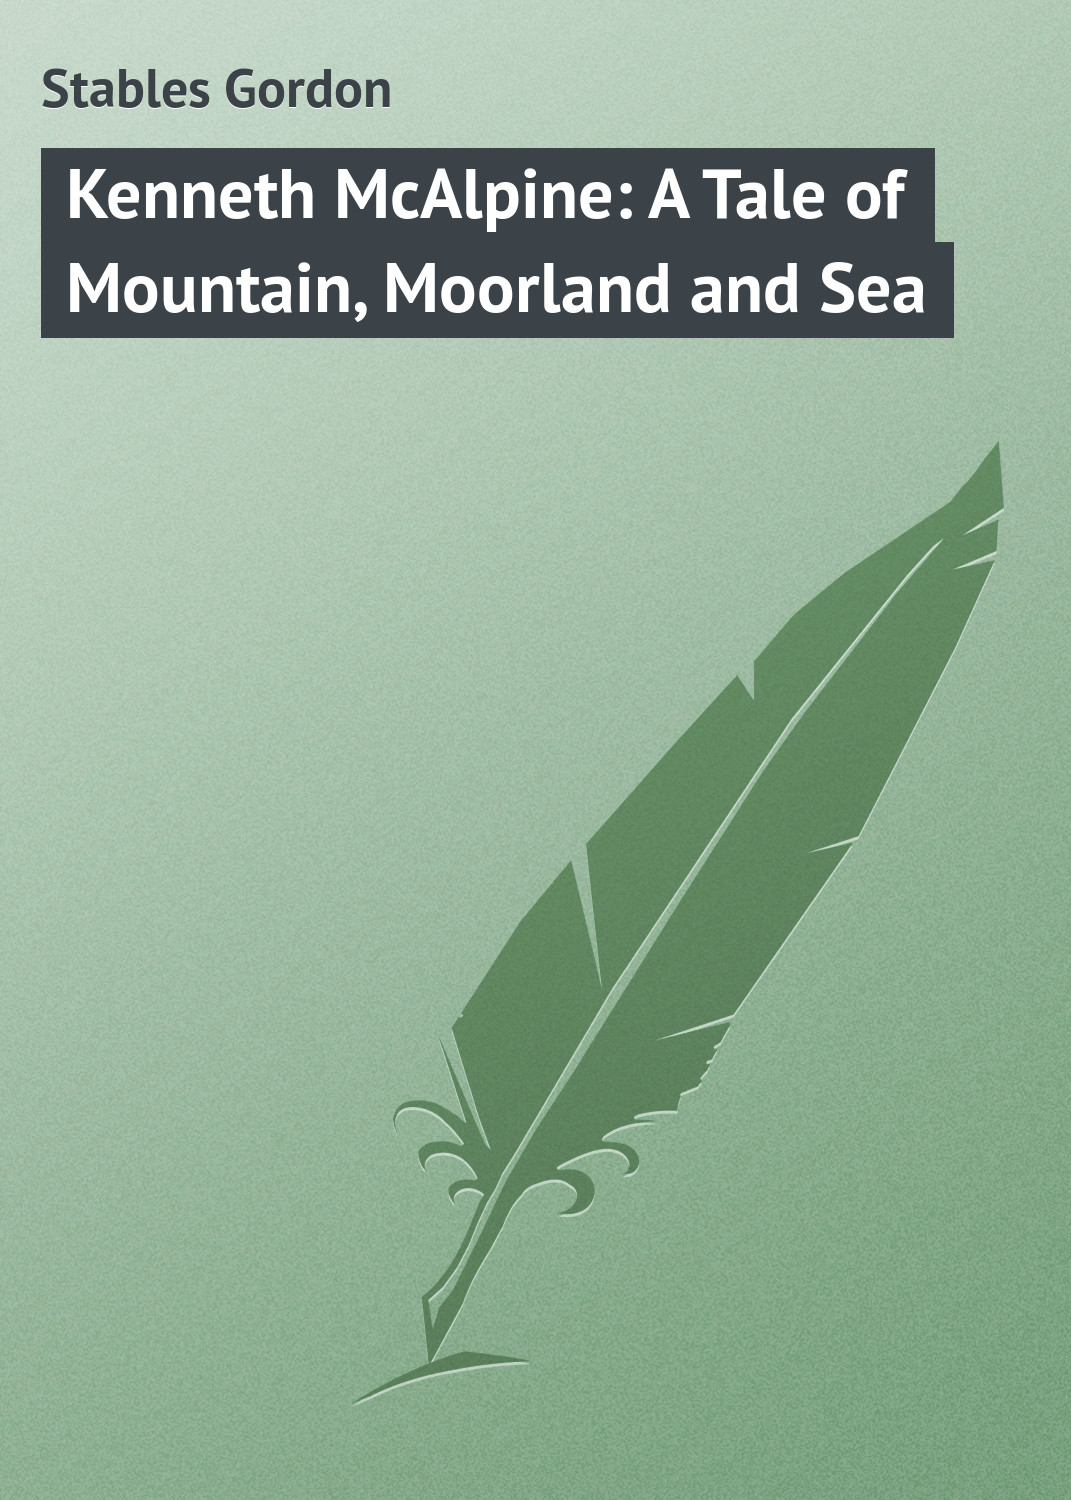 цена на Stables Gordon Kenneth McAlpine: A Tale of Mountain, Moorland and Sea